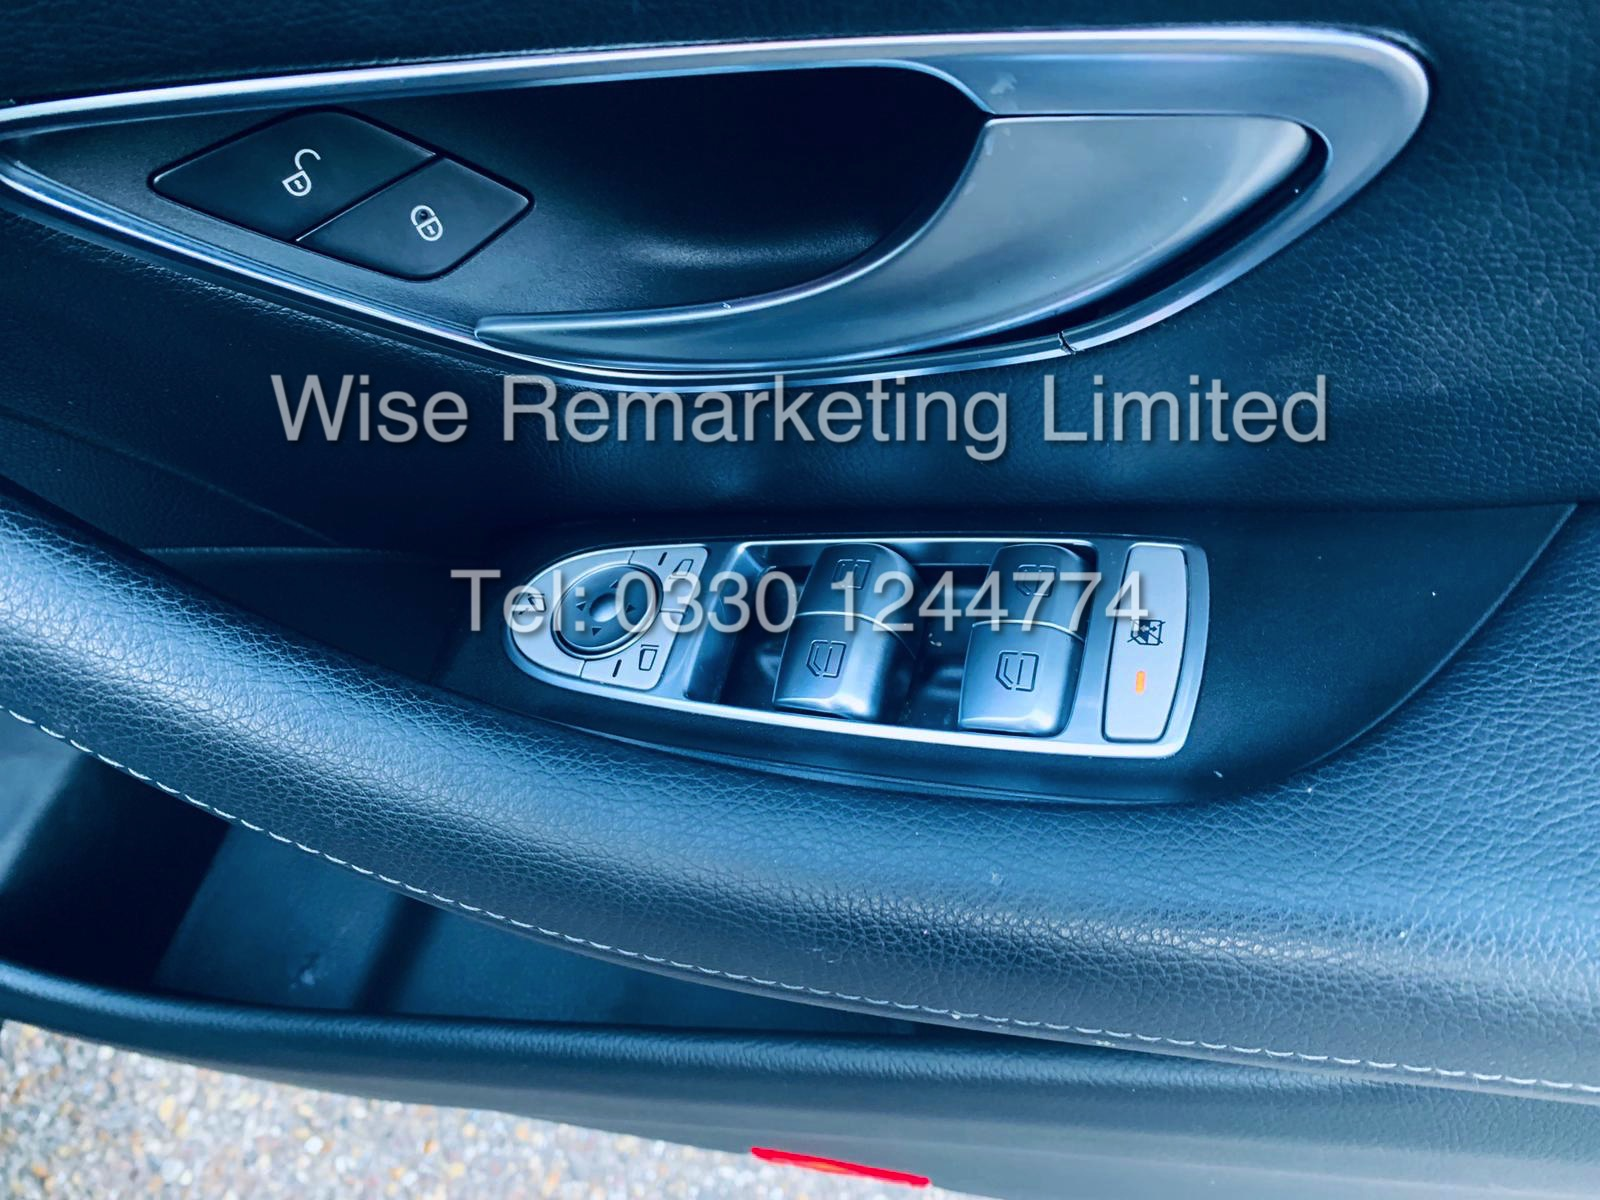 MERCEDES E CLASS ESTATE E220D AMG LINE 2017 / 9G -TRONIC / *LOW MILES* / 1 OWNER - Image 33 of 42